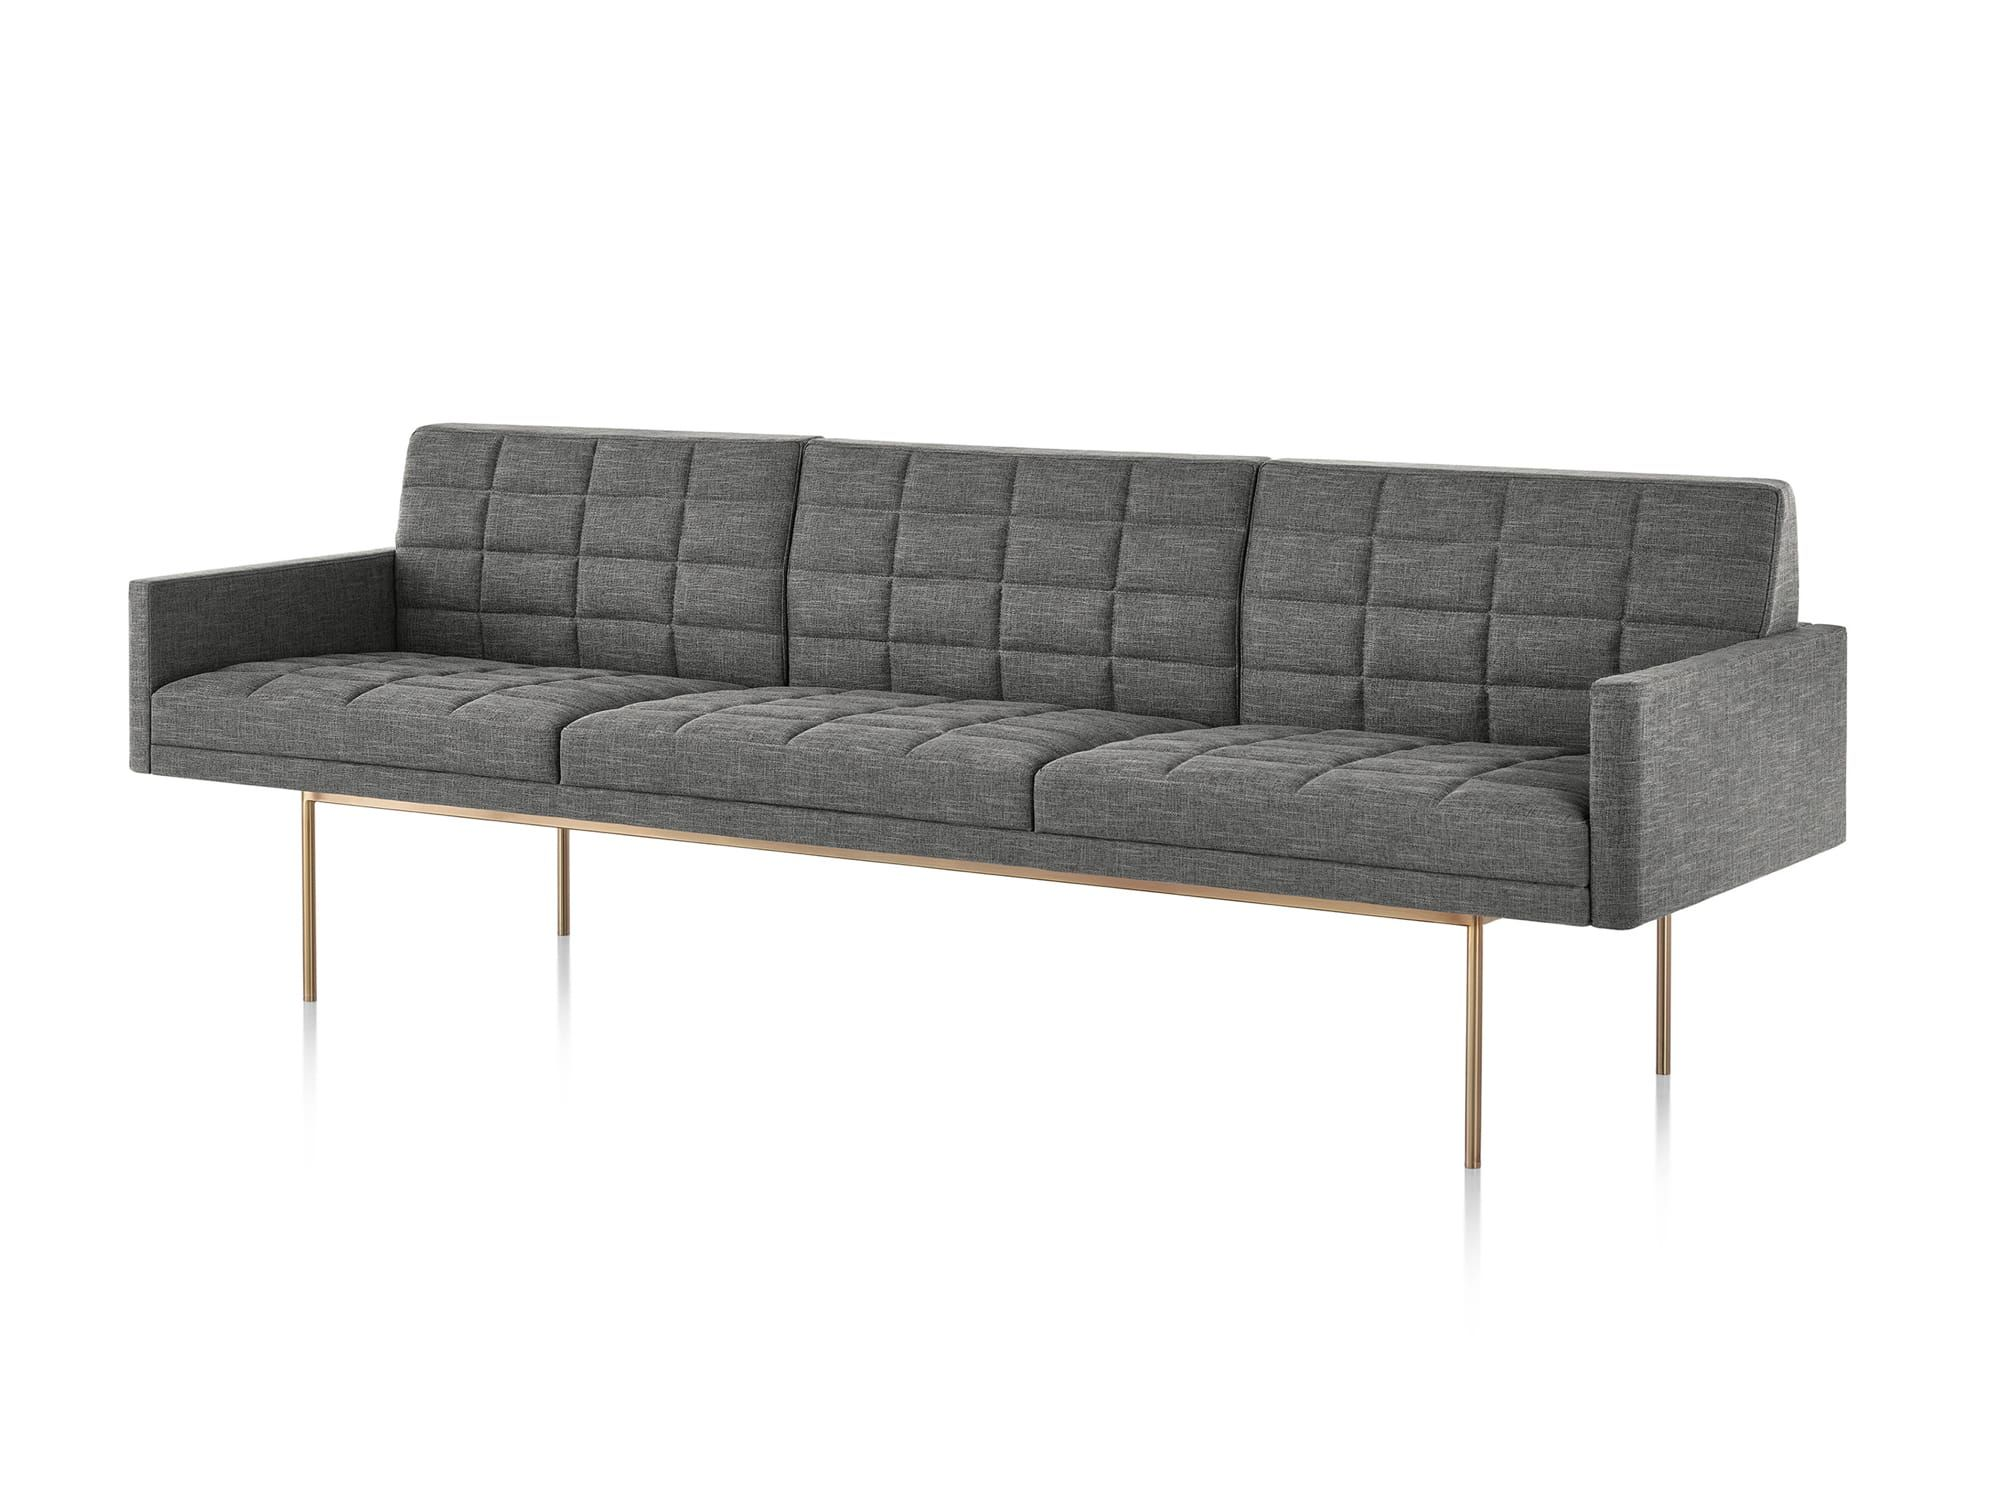 tuxedo sofa in 2019 contemporary home furnishings sofa modern rh pinterest ch